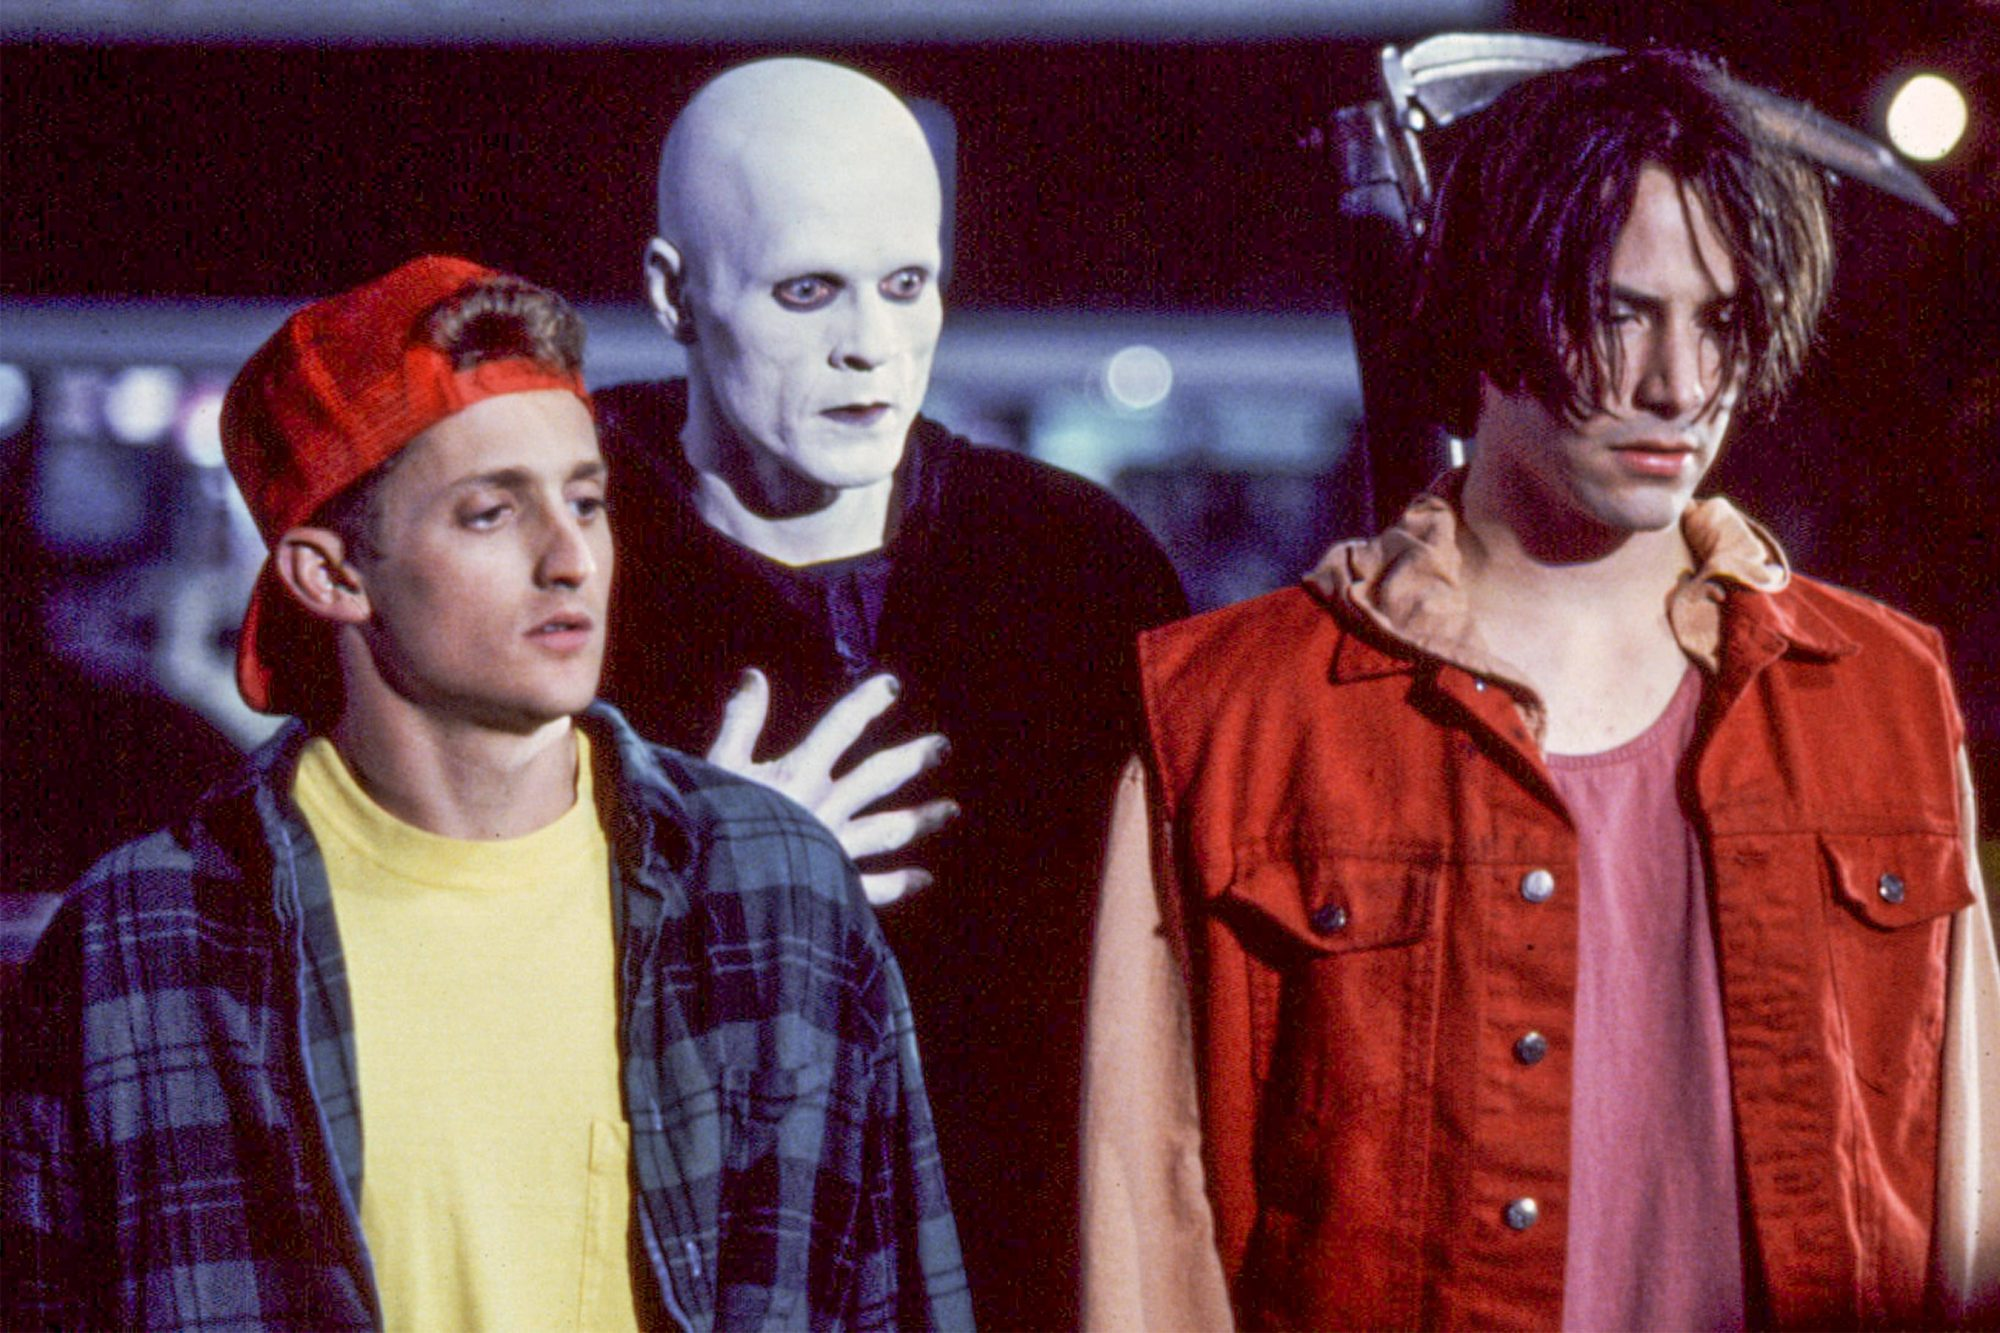 BILL AND TED'S BOGUS JOURNEY, Alex Winter, William Sadler, Keanu Reeves, 1991